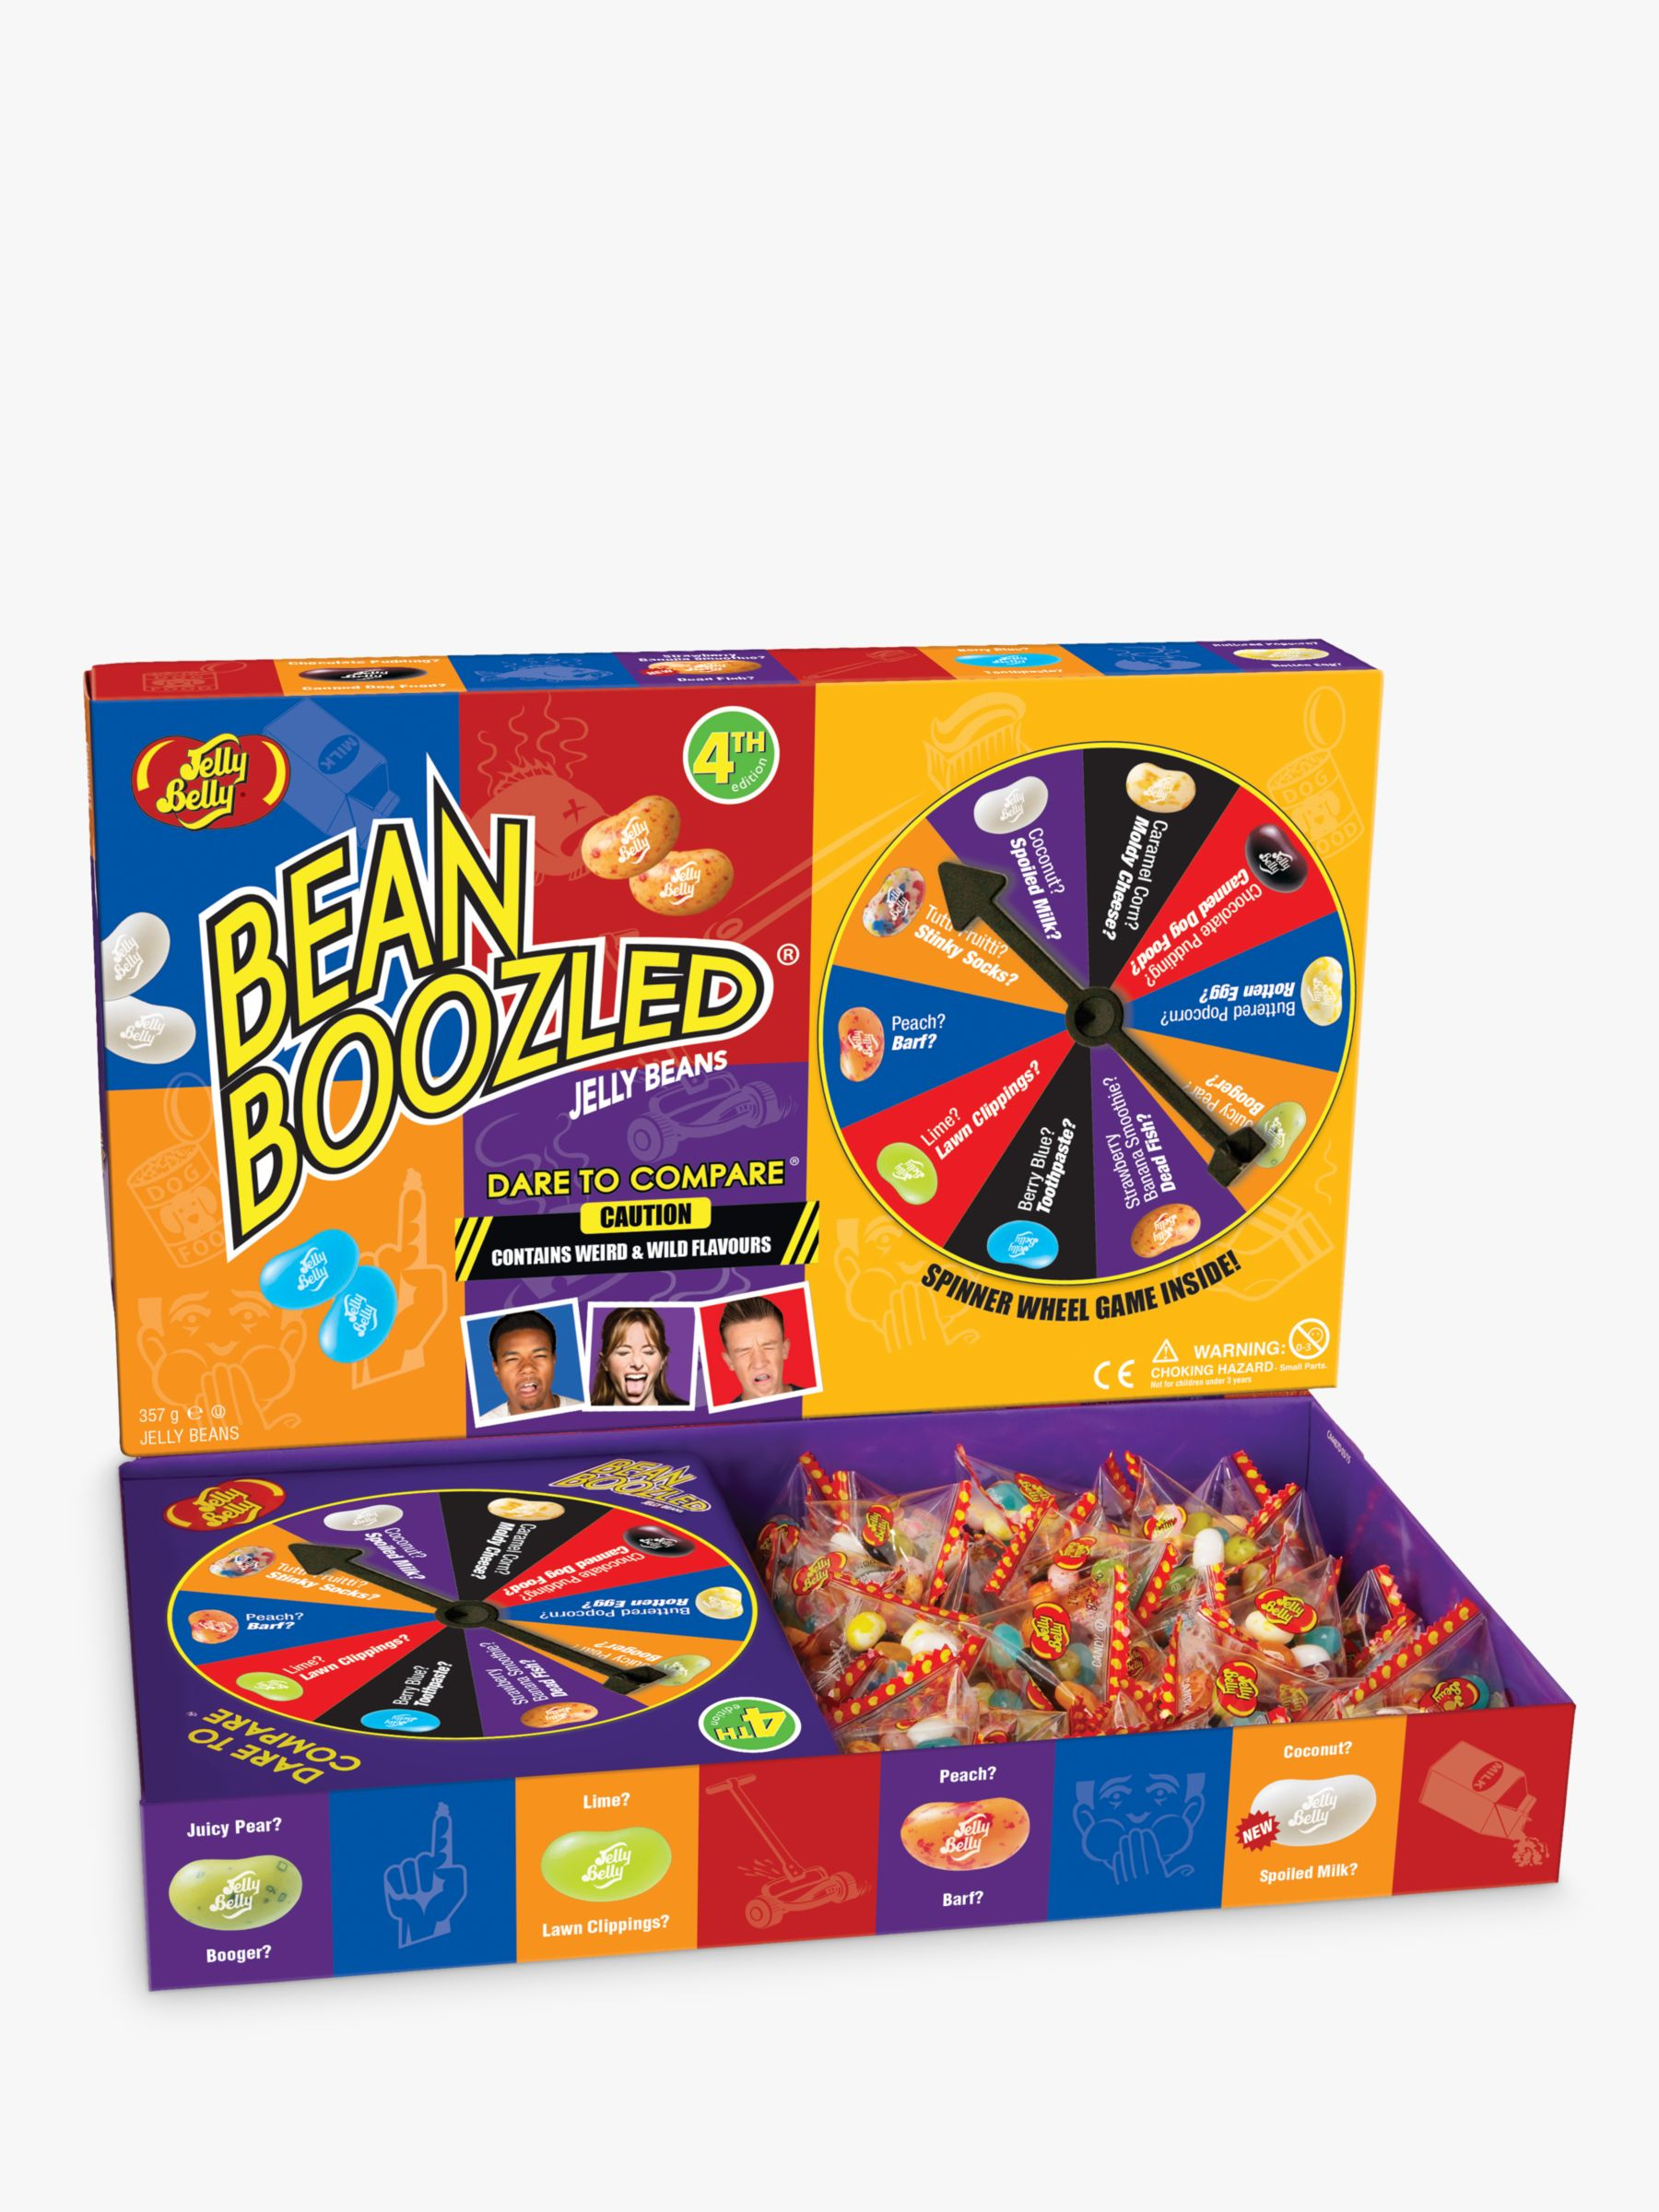 Jelly Belly Jelly Belly Beanboozled, Large, 357g